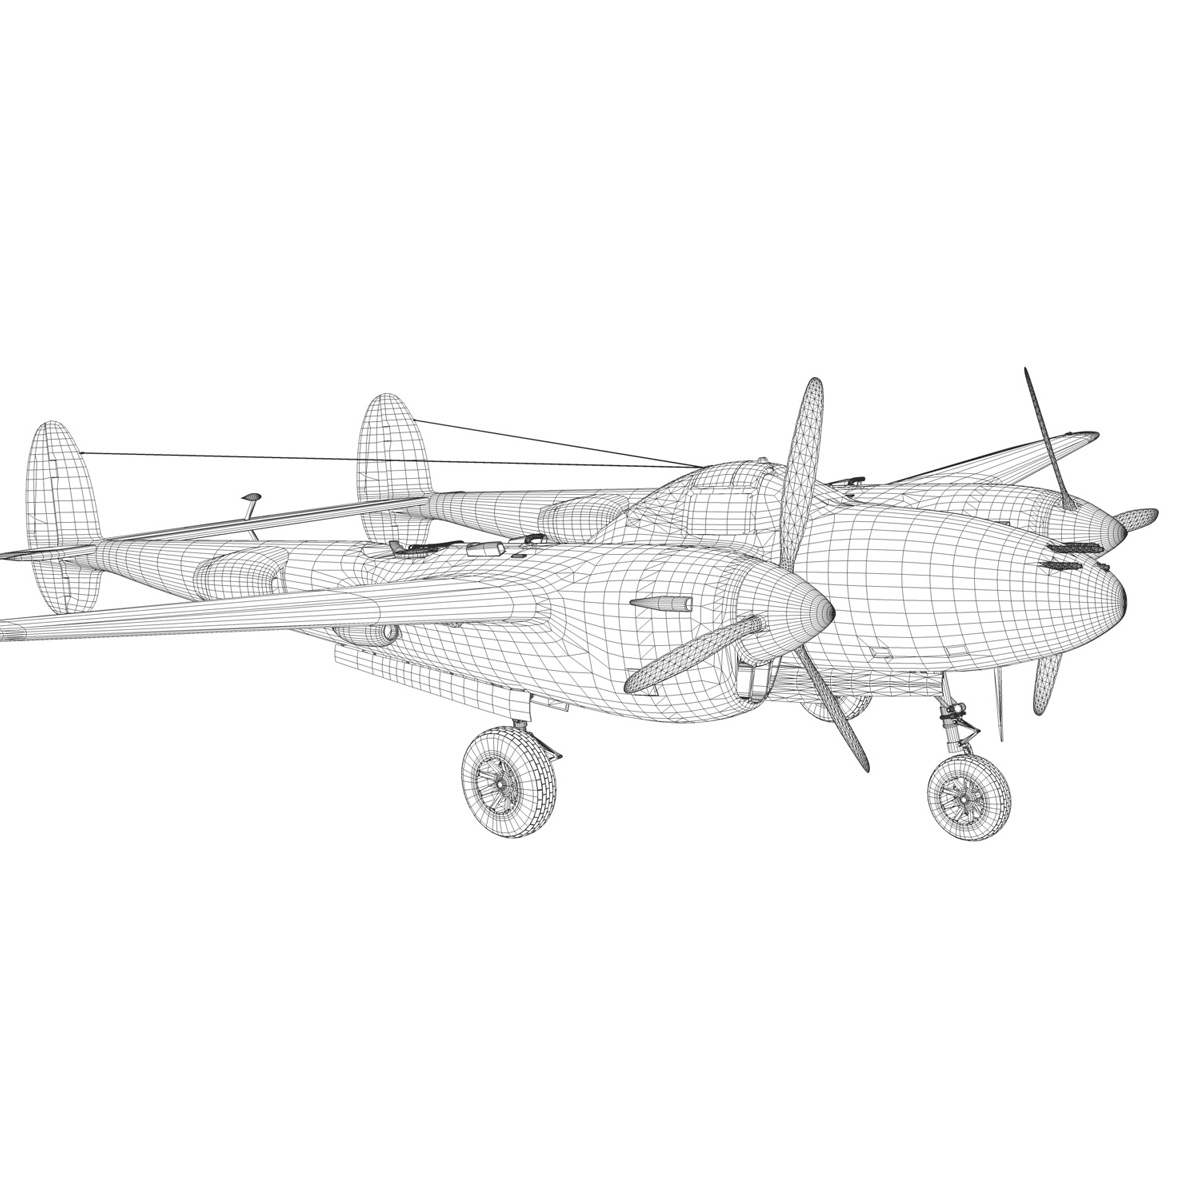 lockheed p-38 lightning – florida cracker 3d model fbx c4d lwo obj 279433